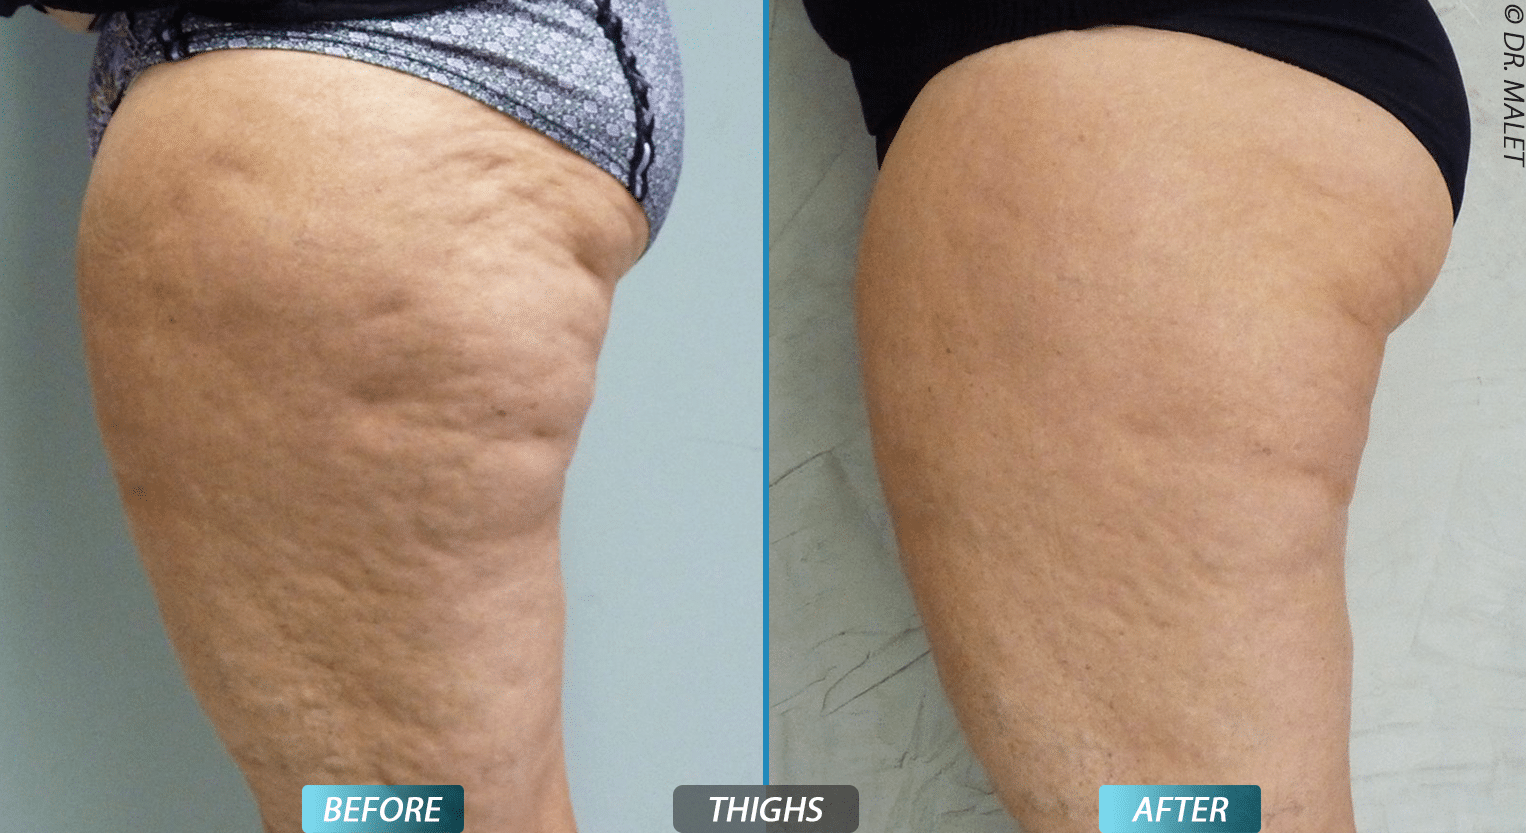 CRISTAL before and after thigh